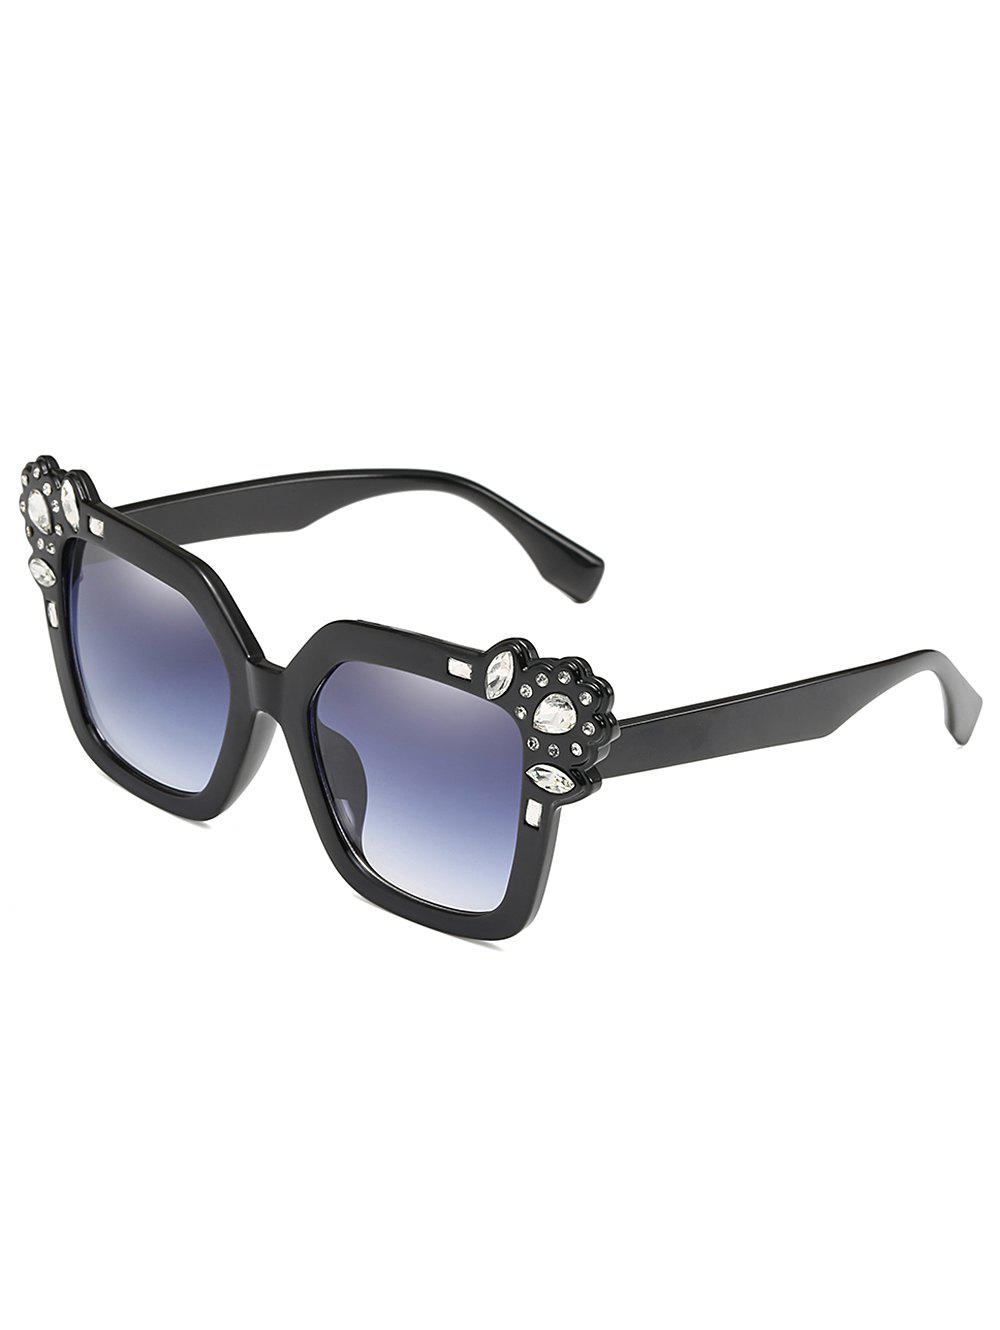 Rhinestone Inlaid Embellished Oversized Sunglasses - BLACK